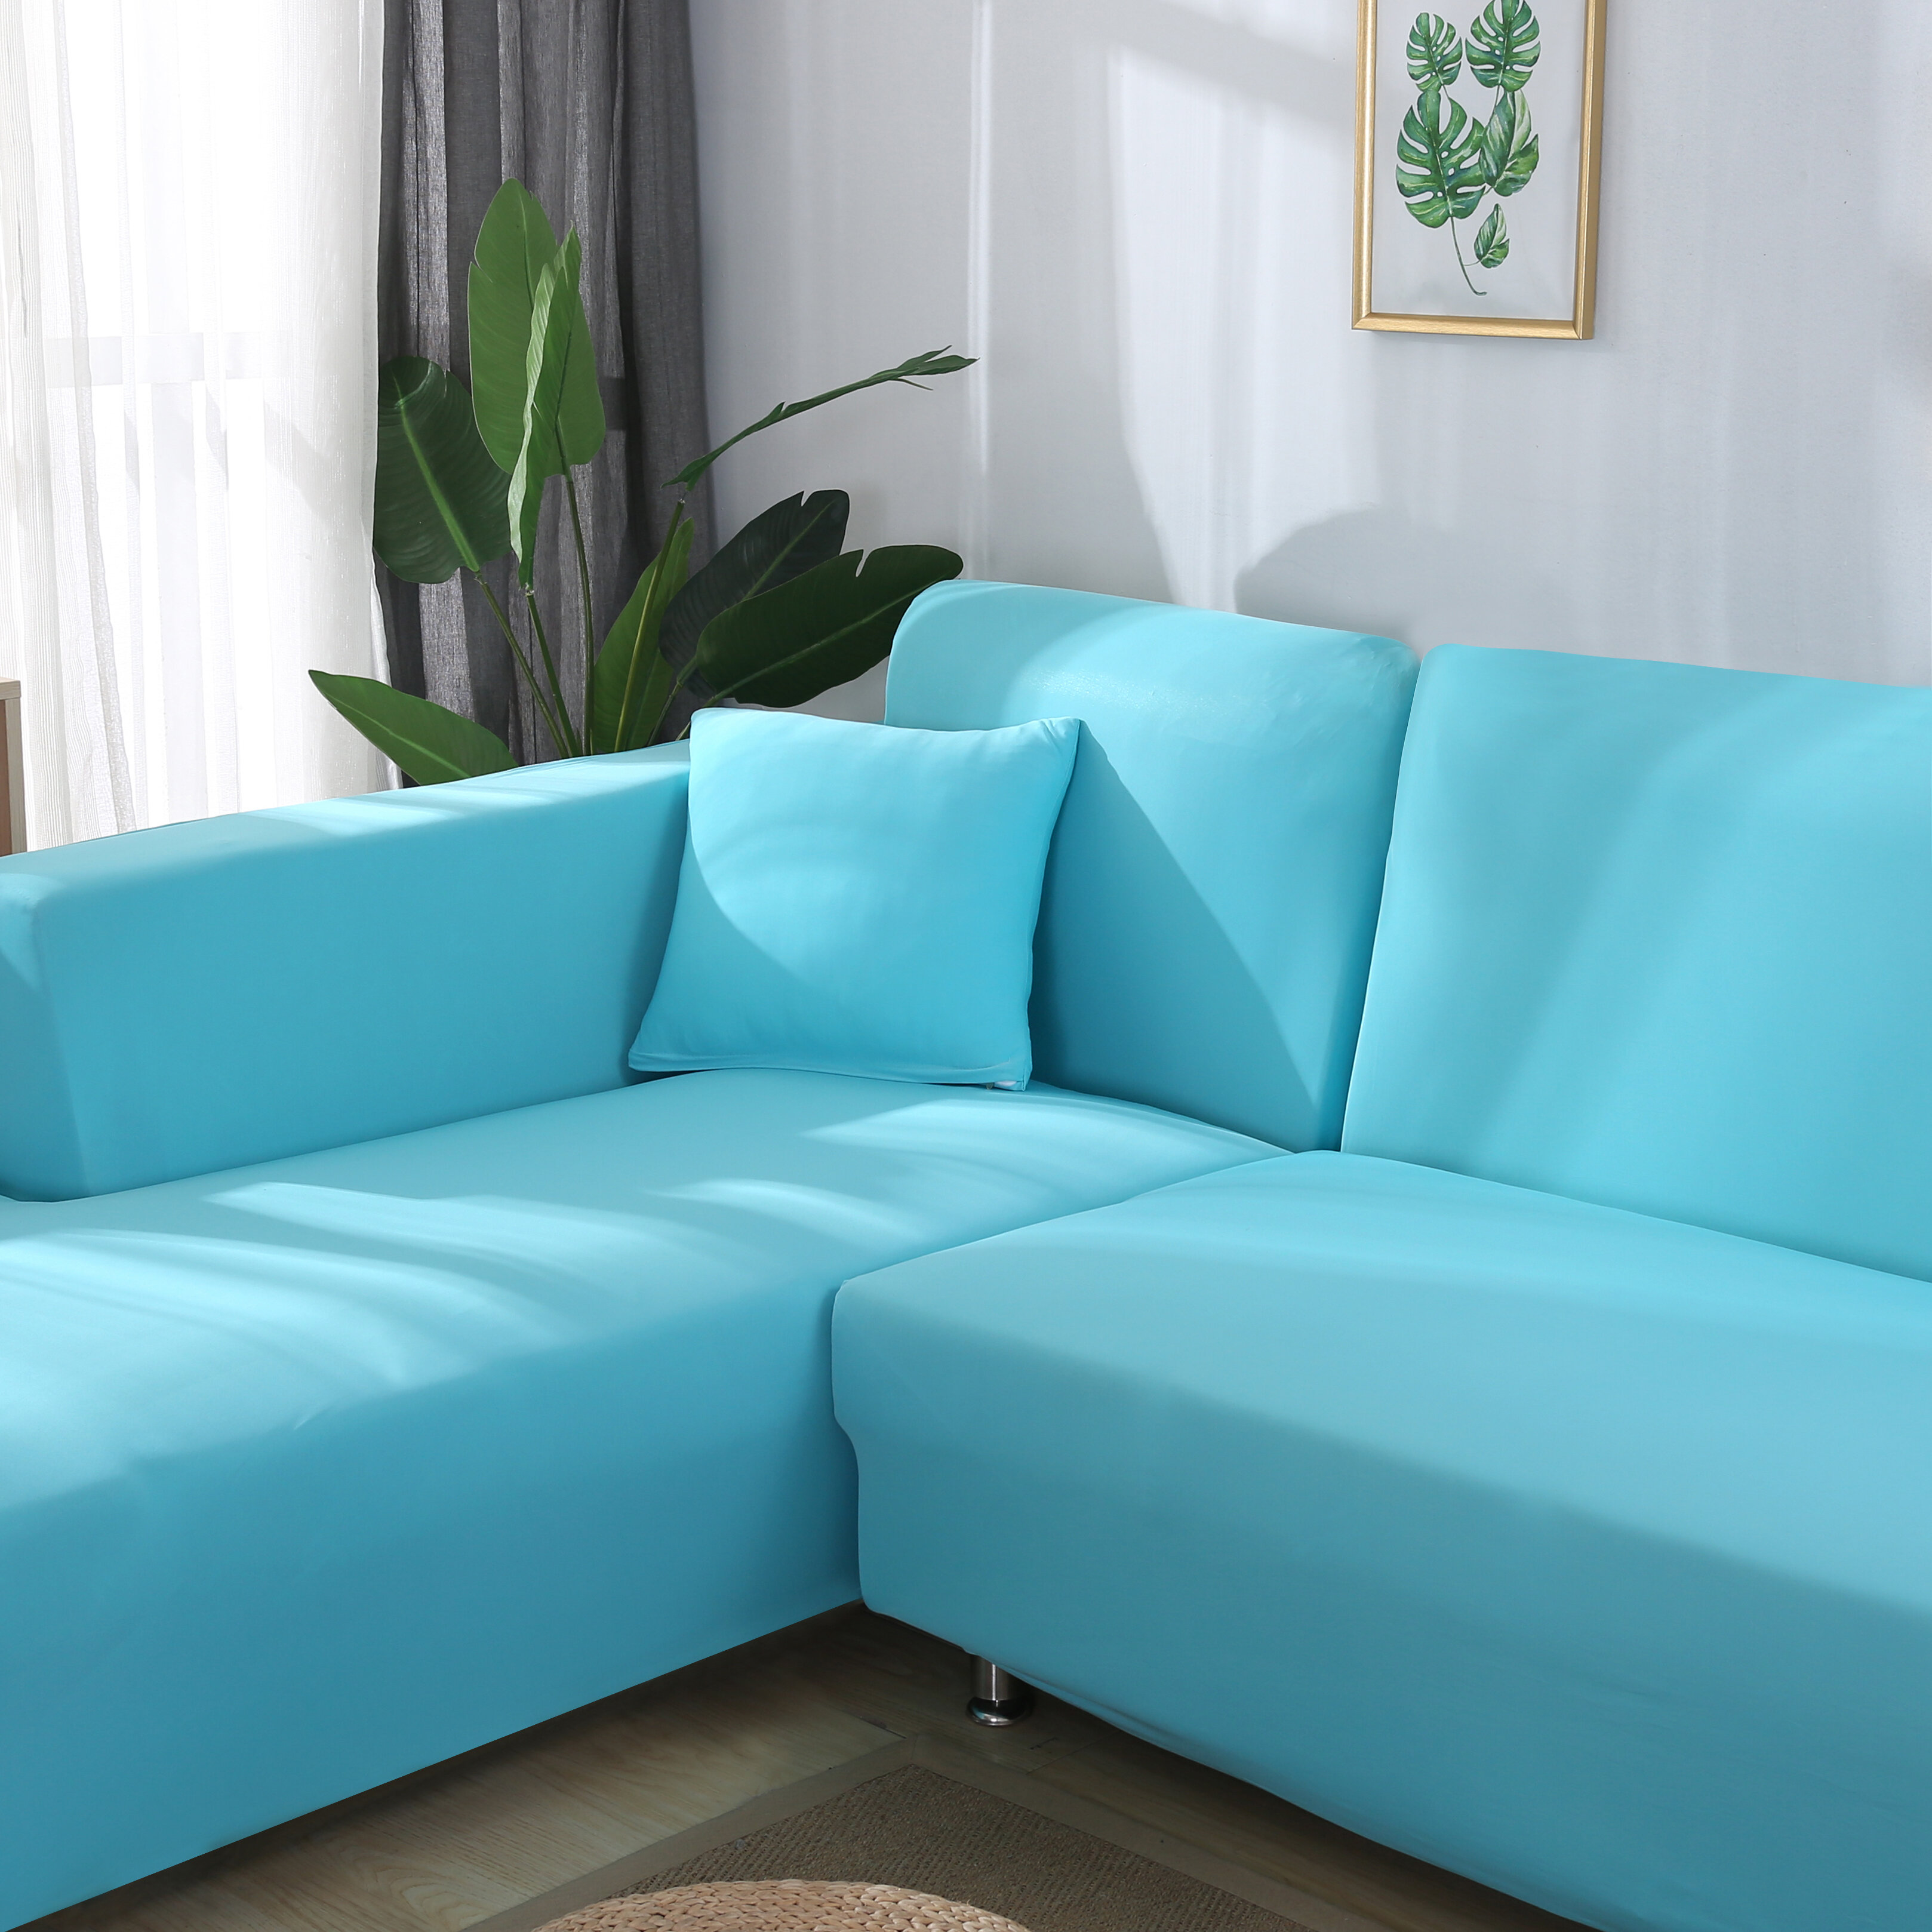 Premium Quality Stretchable Elastic Sofa Covers Premium All-Season Sofa Slip Covers Pet-Friendly and Stain-Resistant